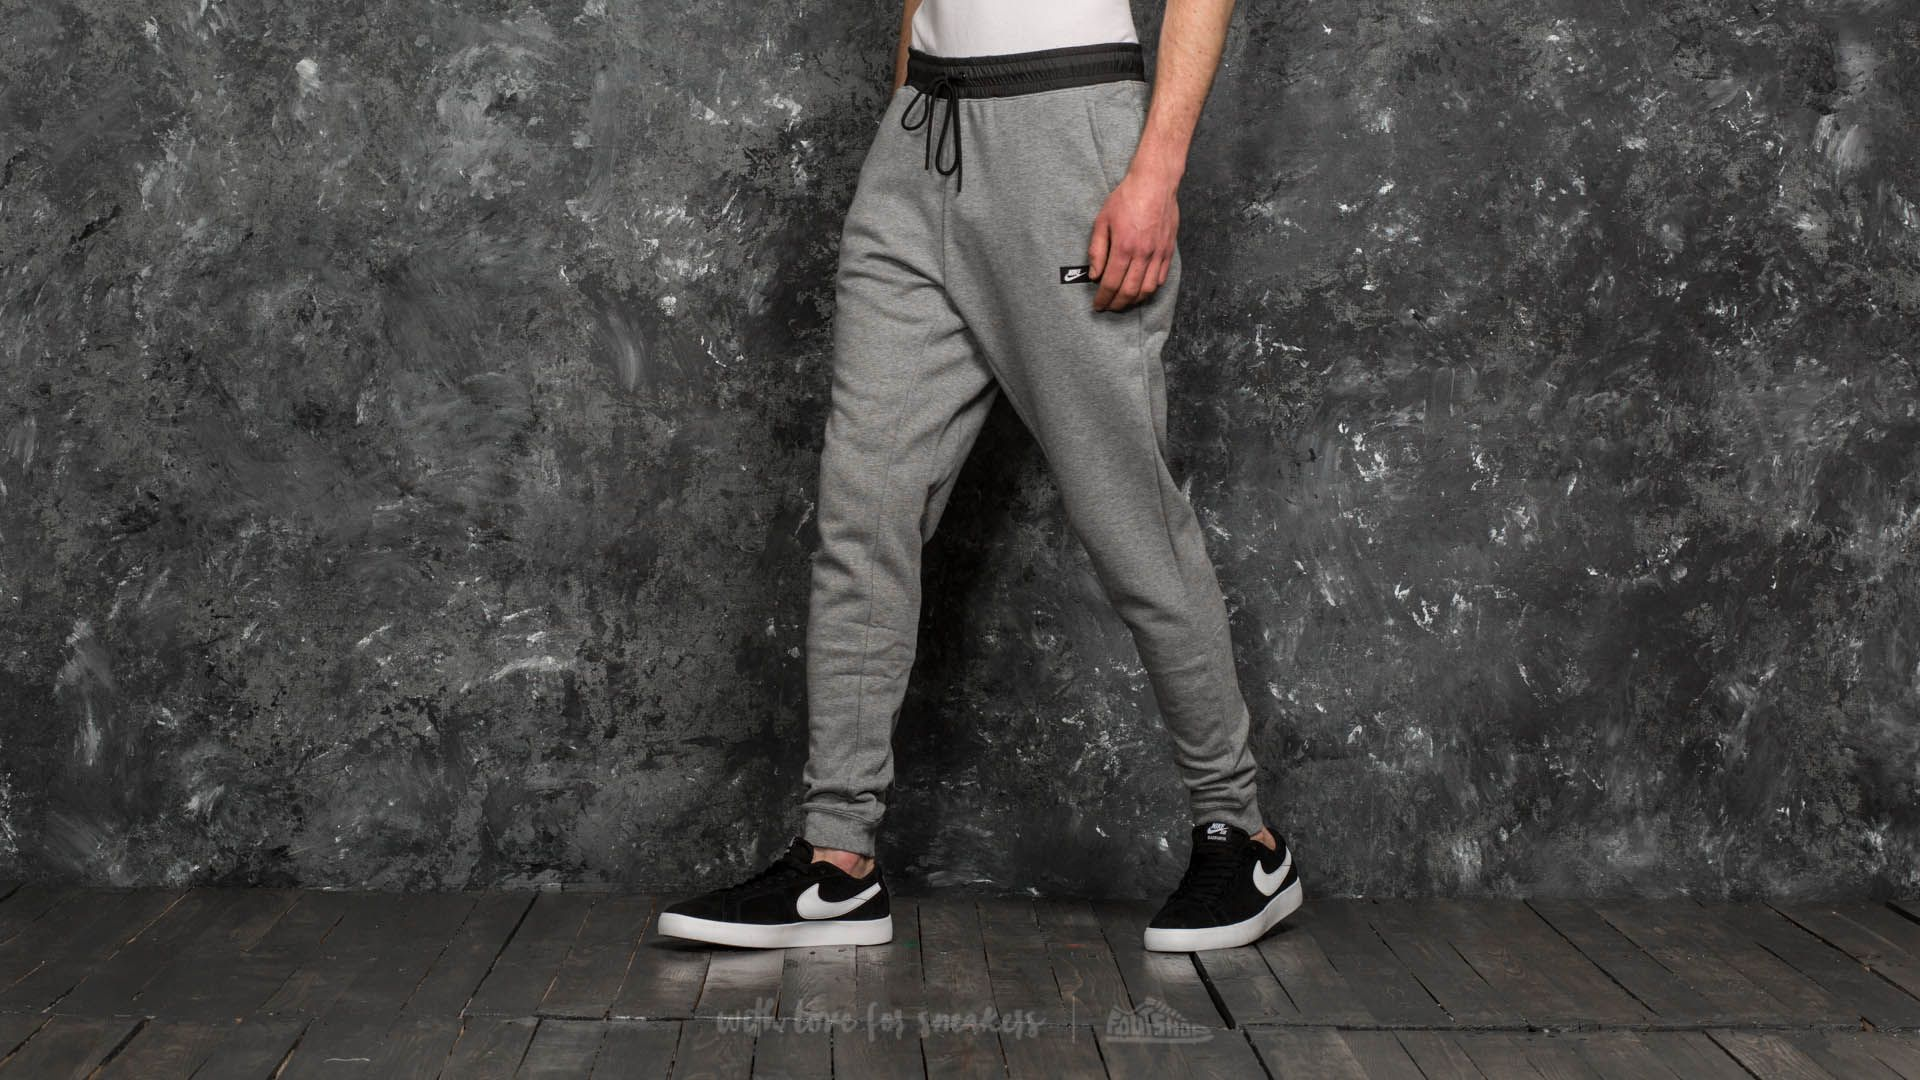 51bffdedaee0 Nike Sportswear Modern Fitted Joggers Carbon Heather  Black ...